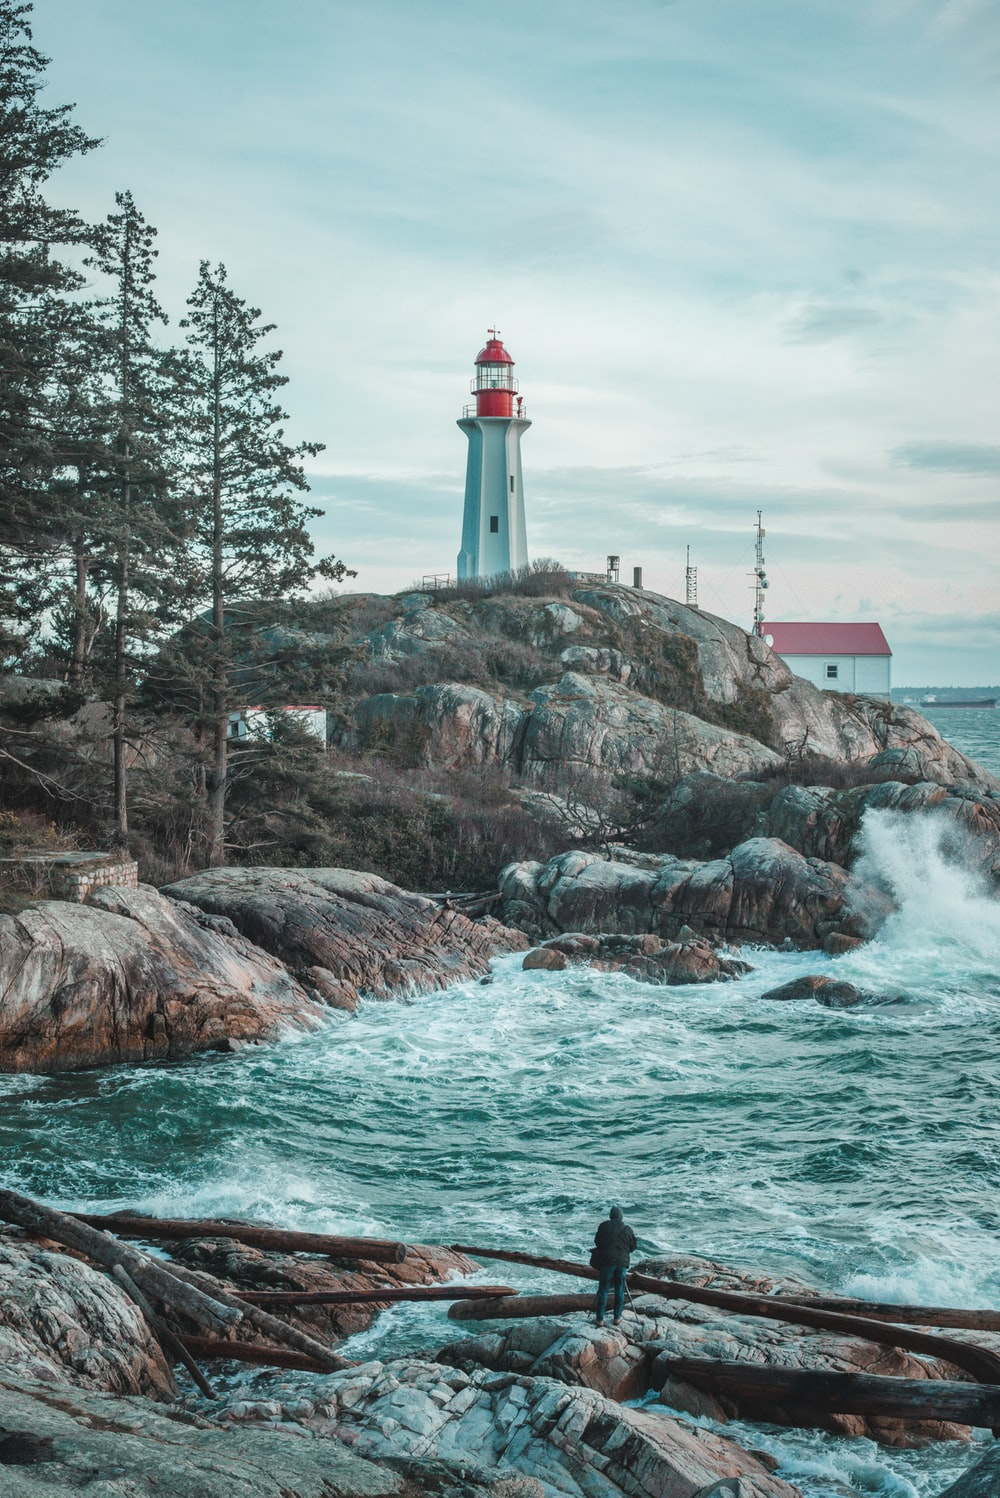 white and red lighthouse on brown rock formation near body of water during daytime